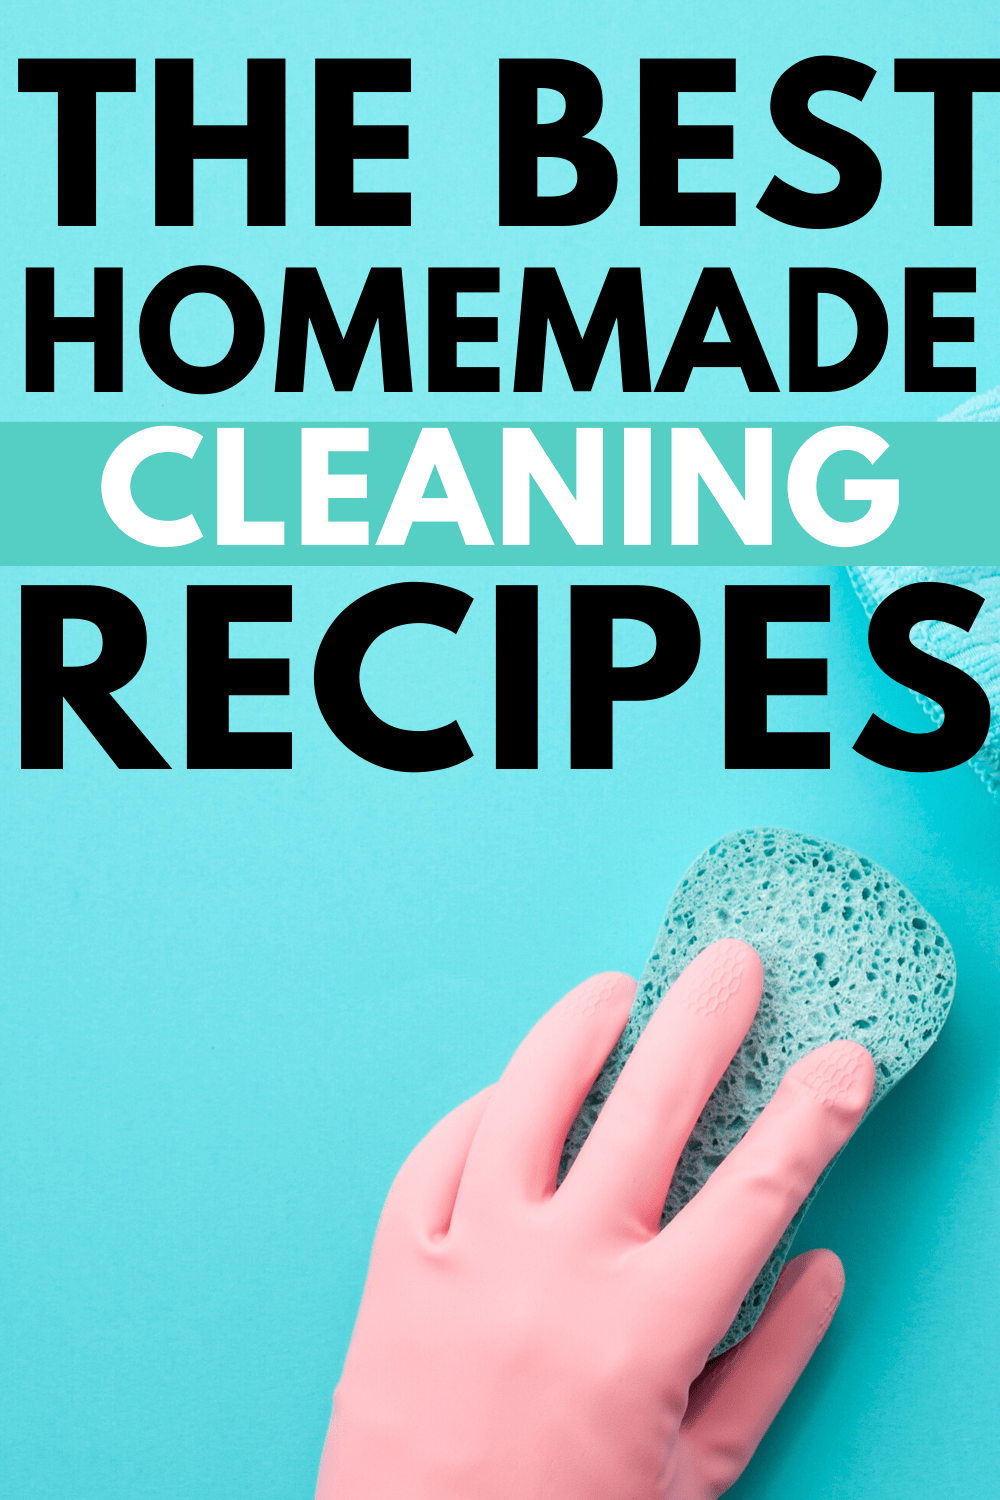 Clean your home with these DIY home cleaning recipes and avoid dealing with harsh chemicals. Download the free printable and enjoy these DIY home cleaners. via @mystayathome